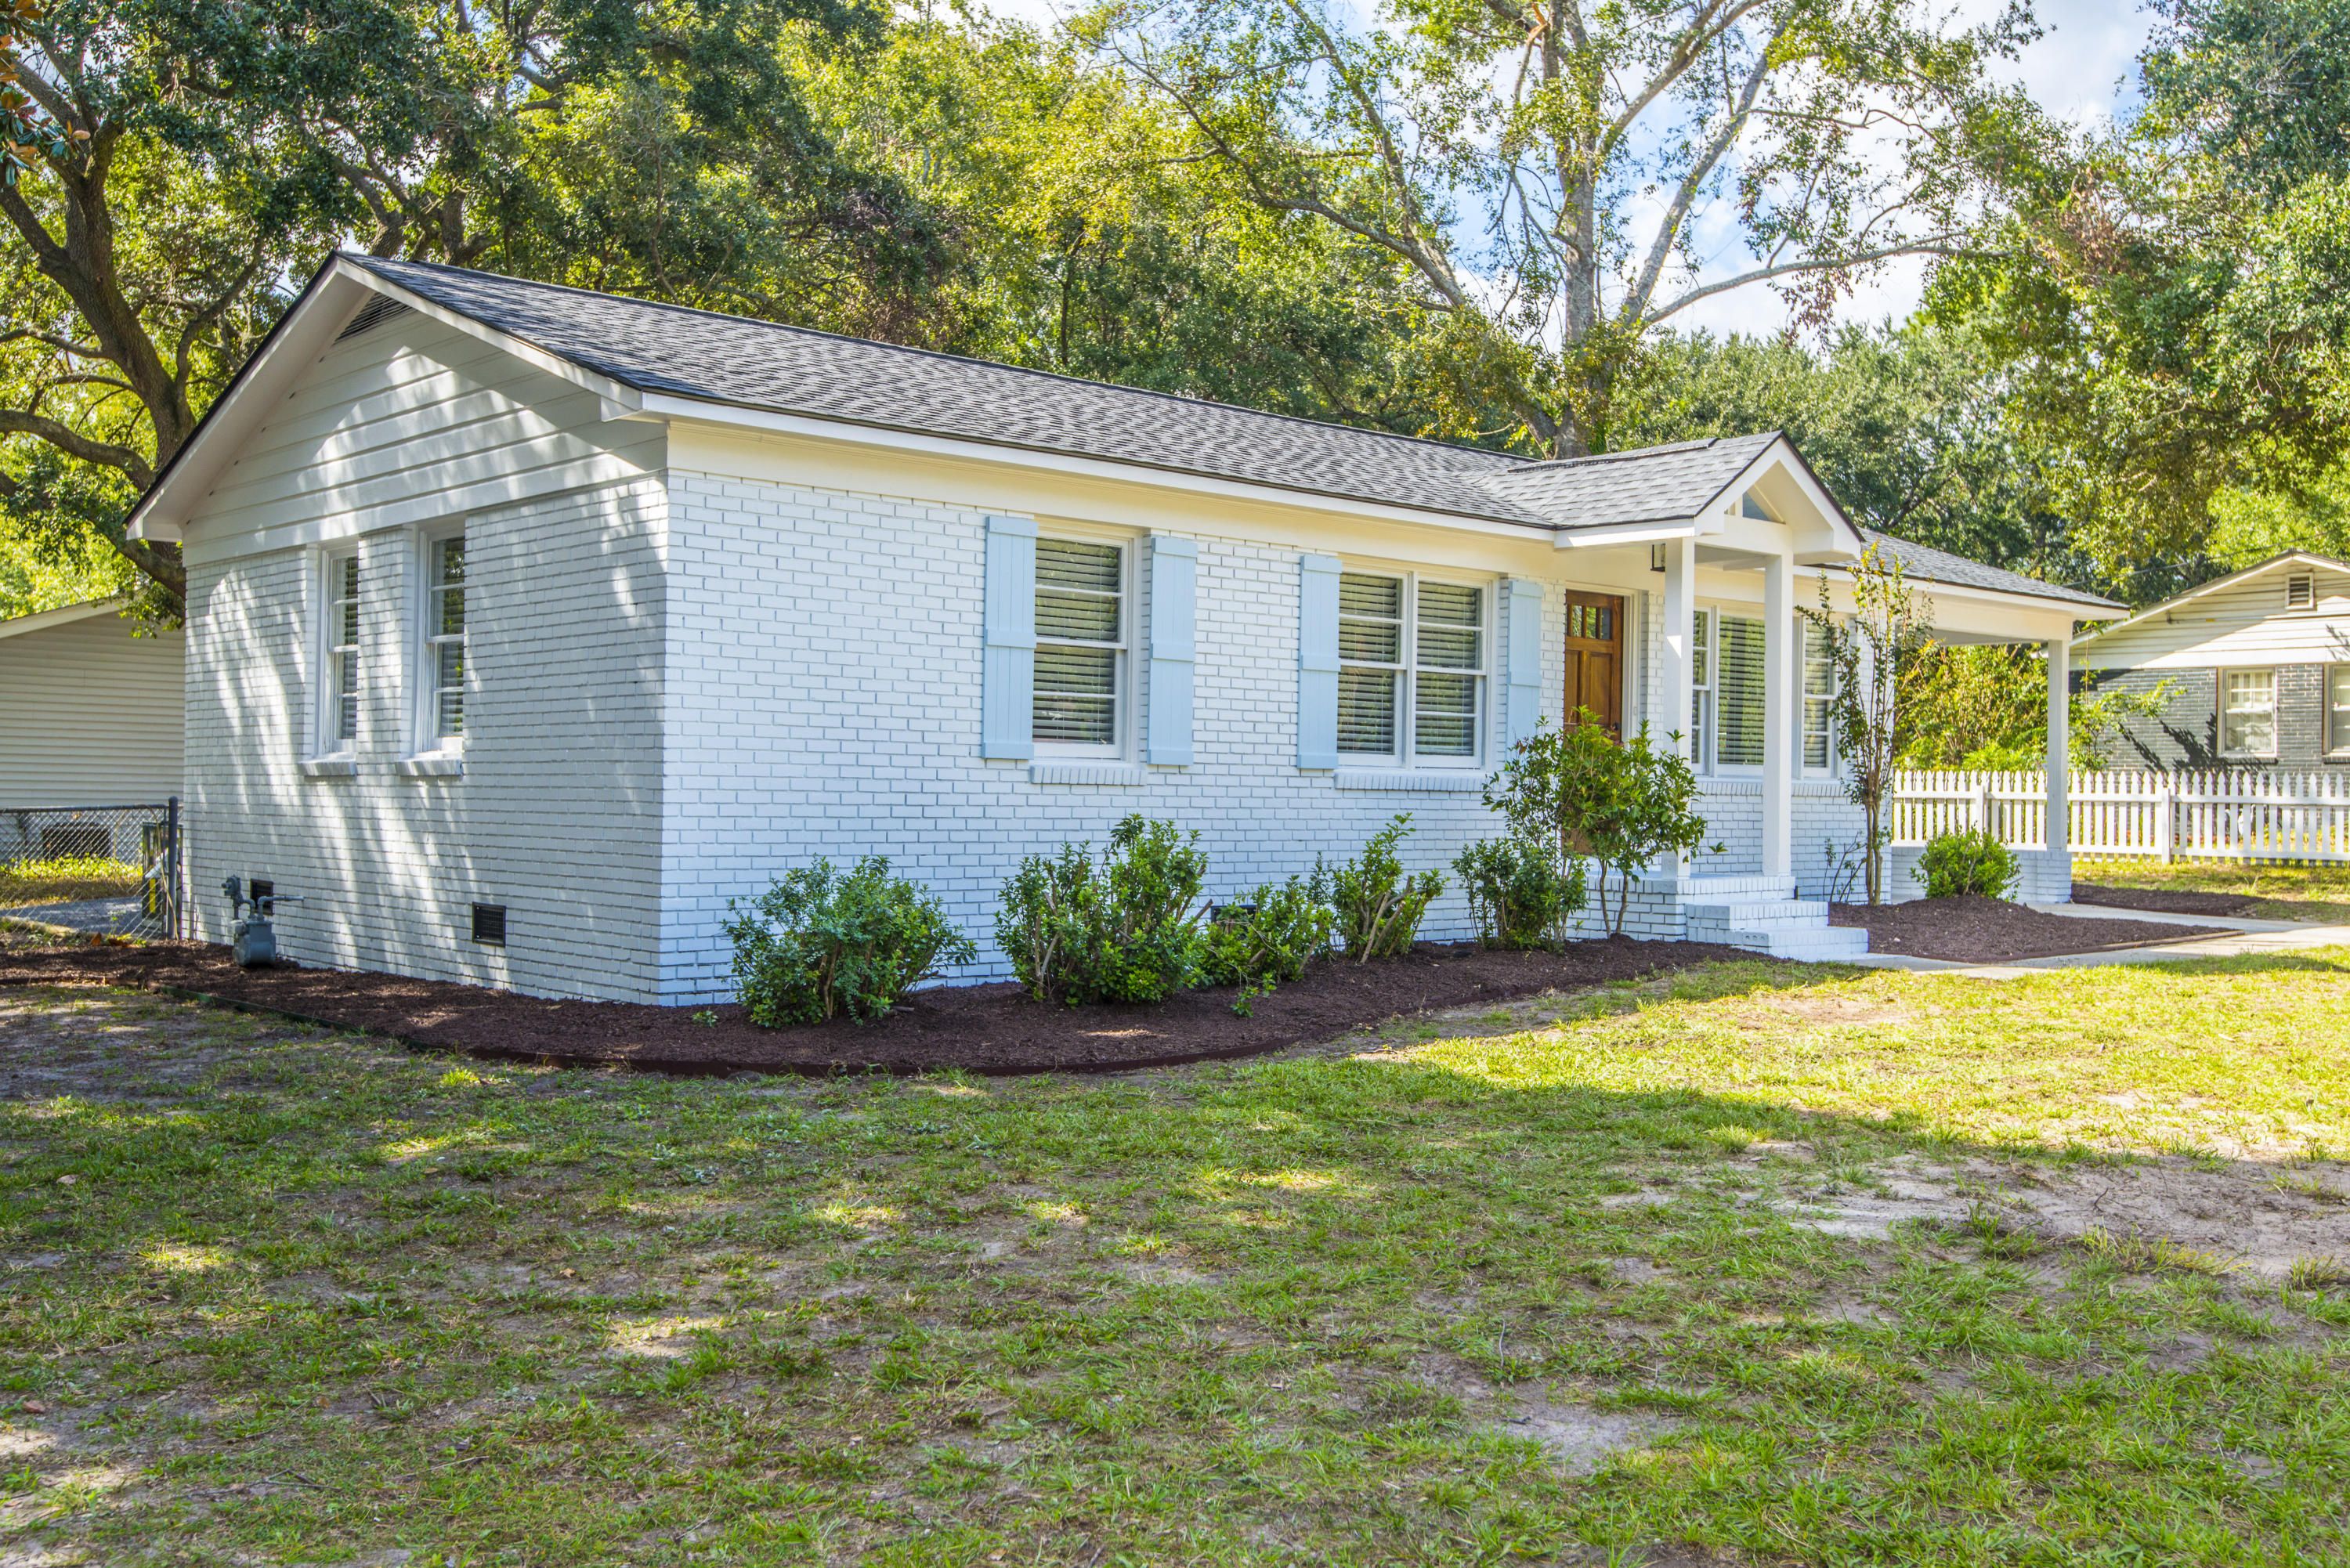 West Glow Homes For Sale - 1125 Crull, Charleston, SC - 1